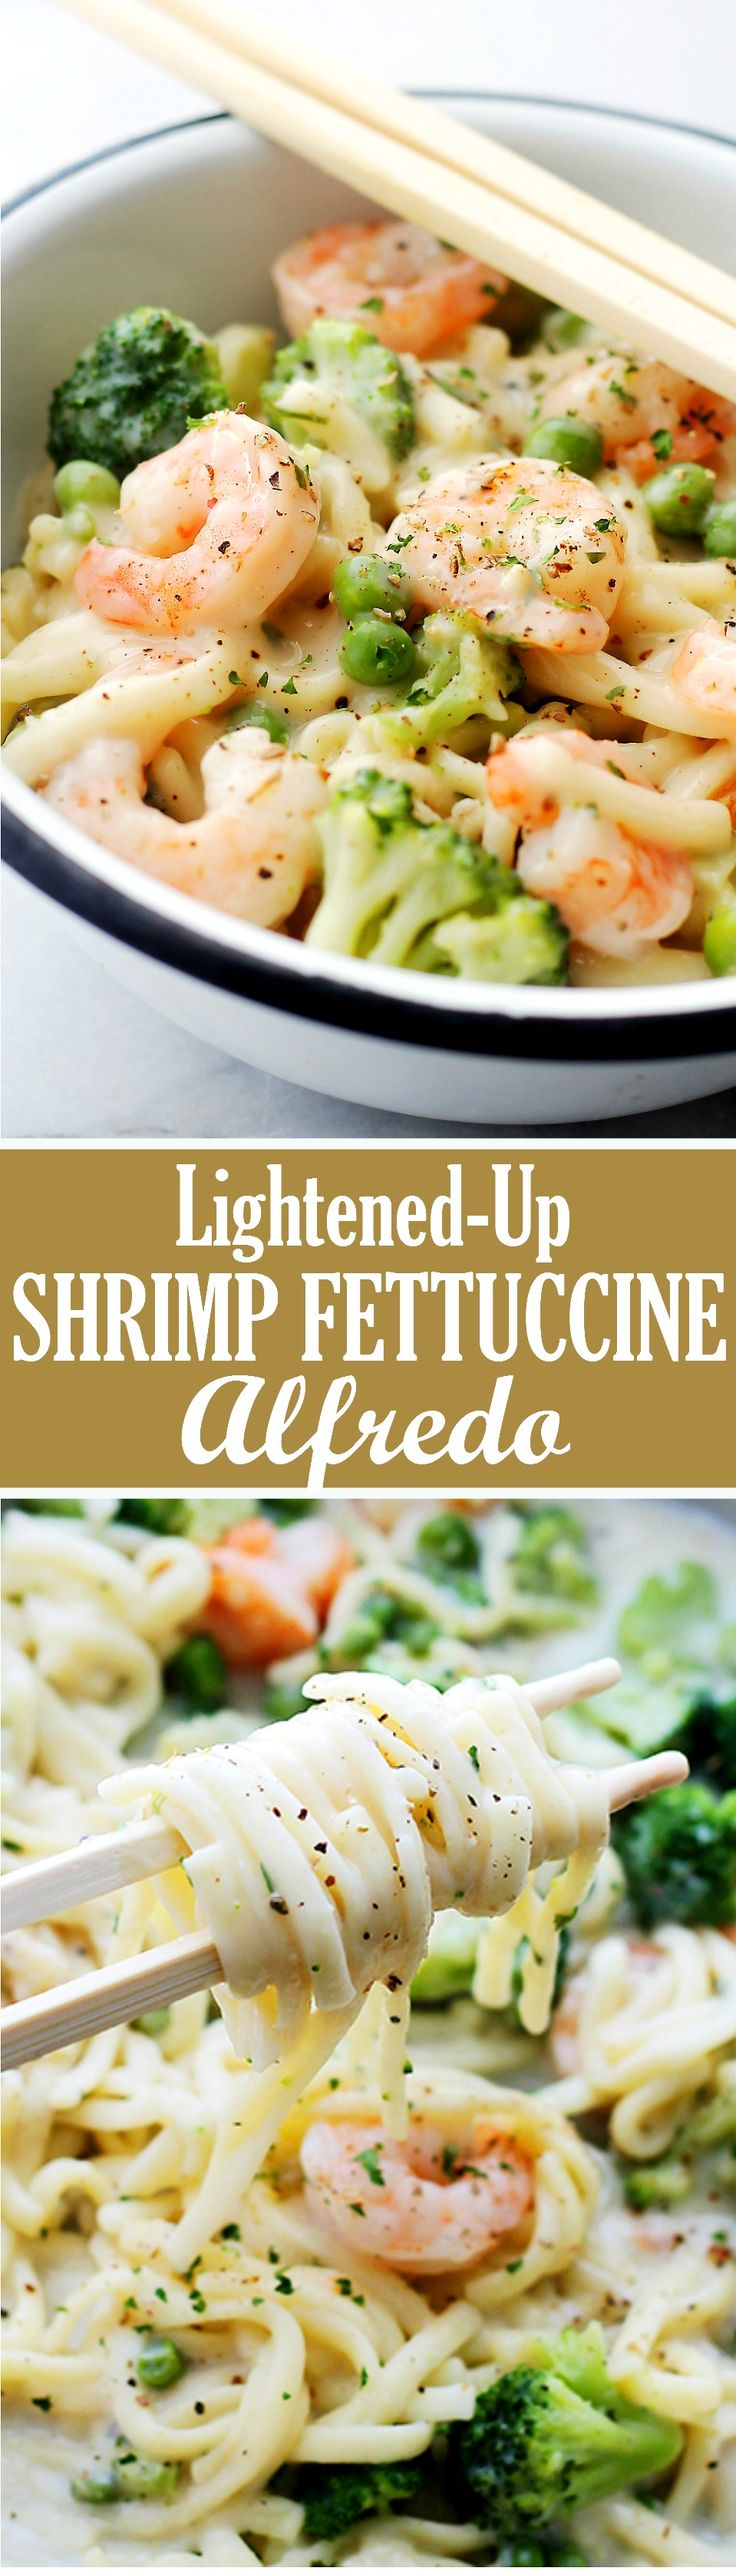 Lightened-Up Shrimp Fettuccine Alfredo - 30-minute, easy, creamy, lightened-up alfredo fettuccine tossed with buttery shrimp and veggies that makes for a quick and absolutely delicious meal.